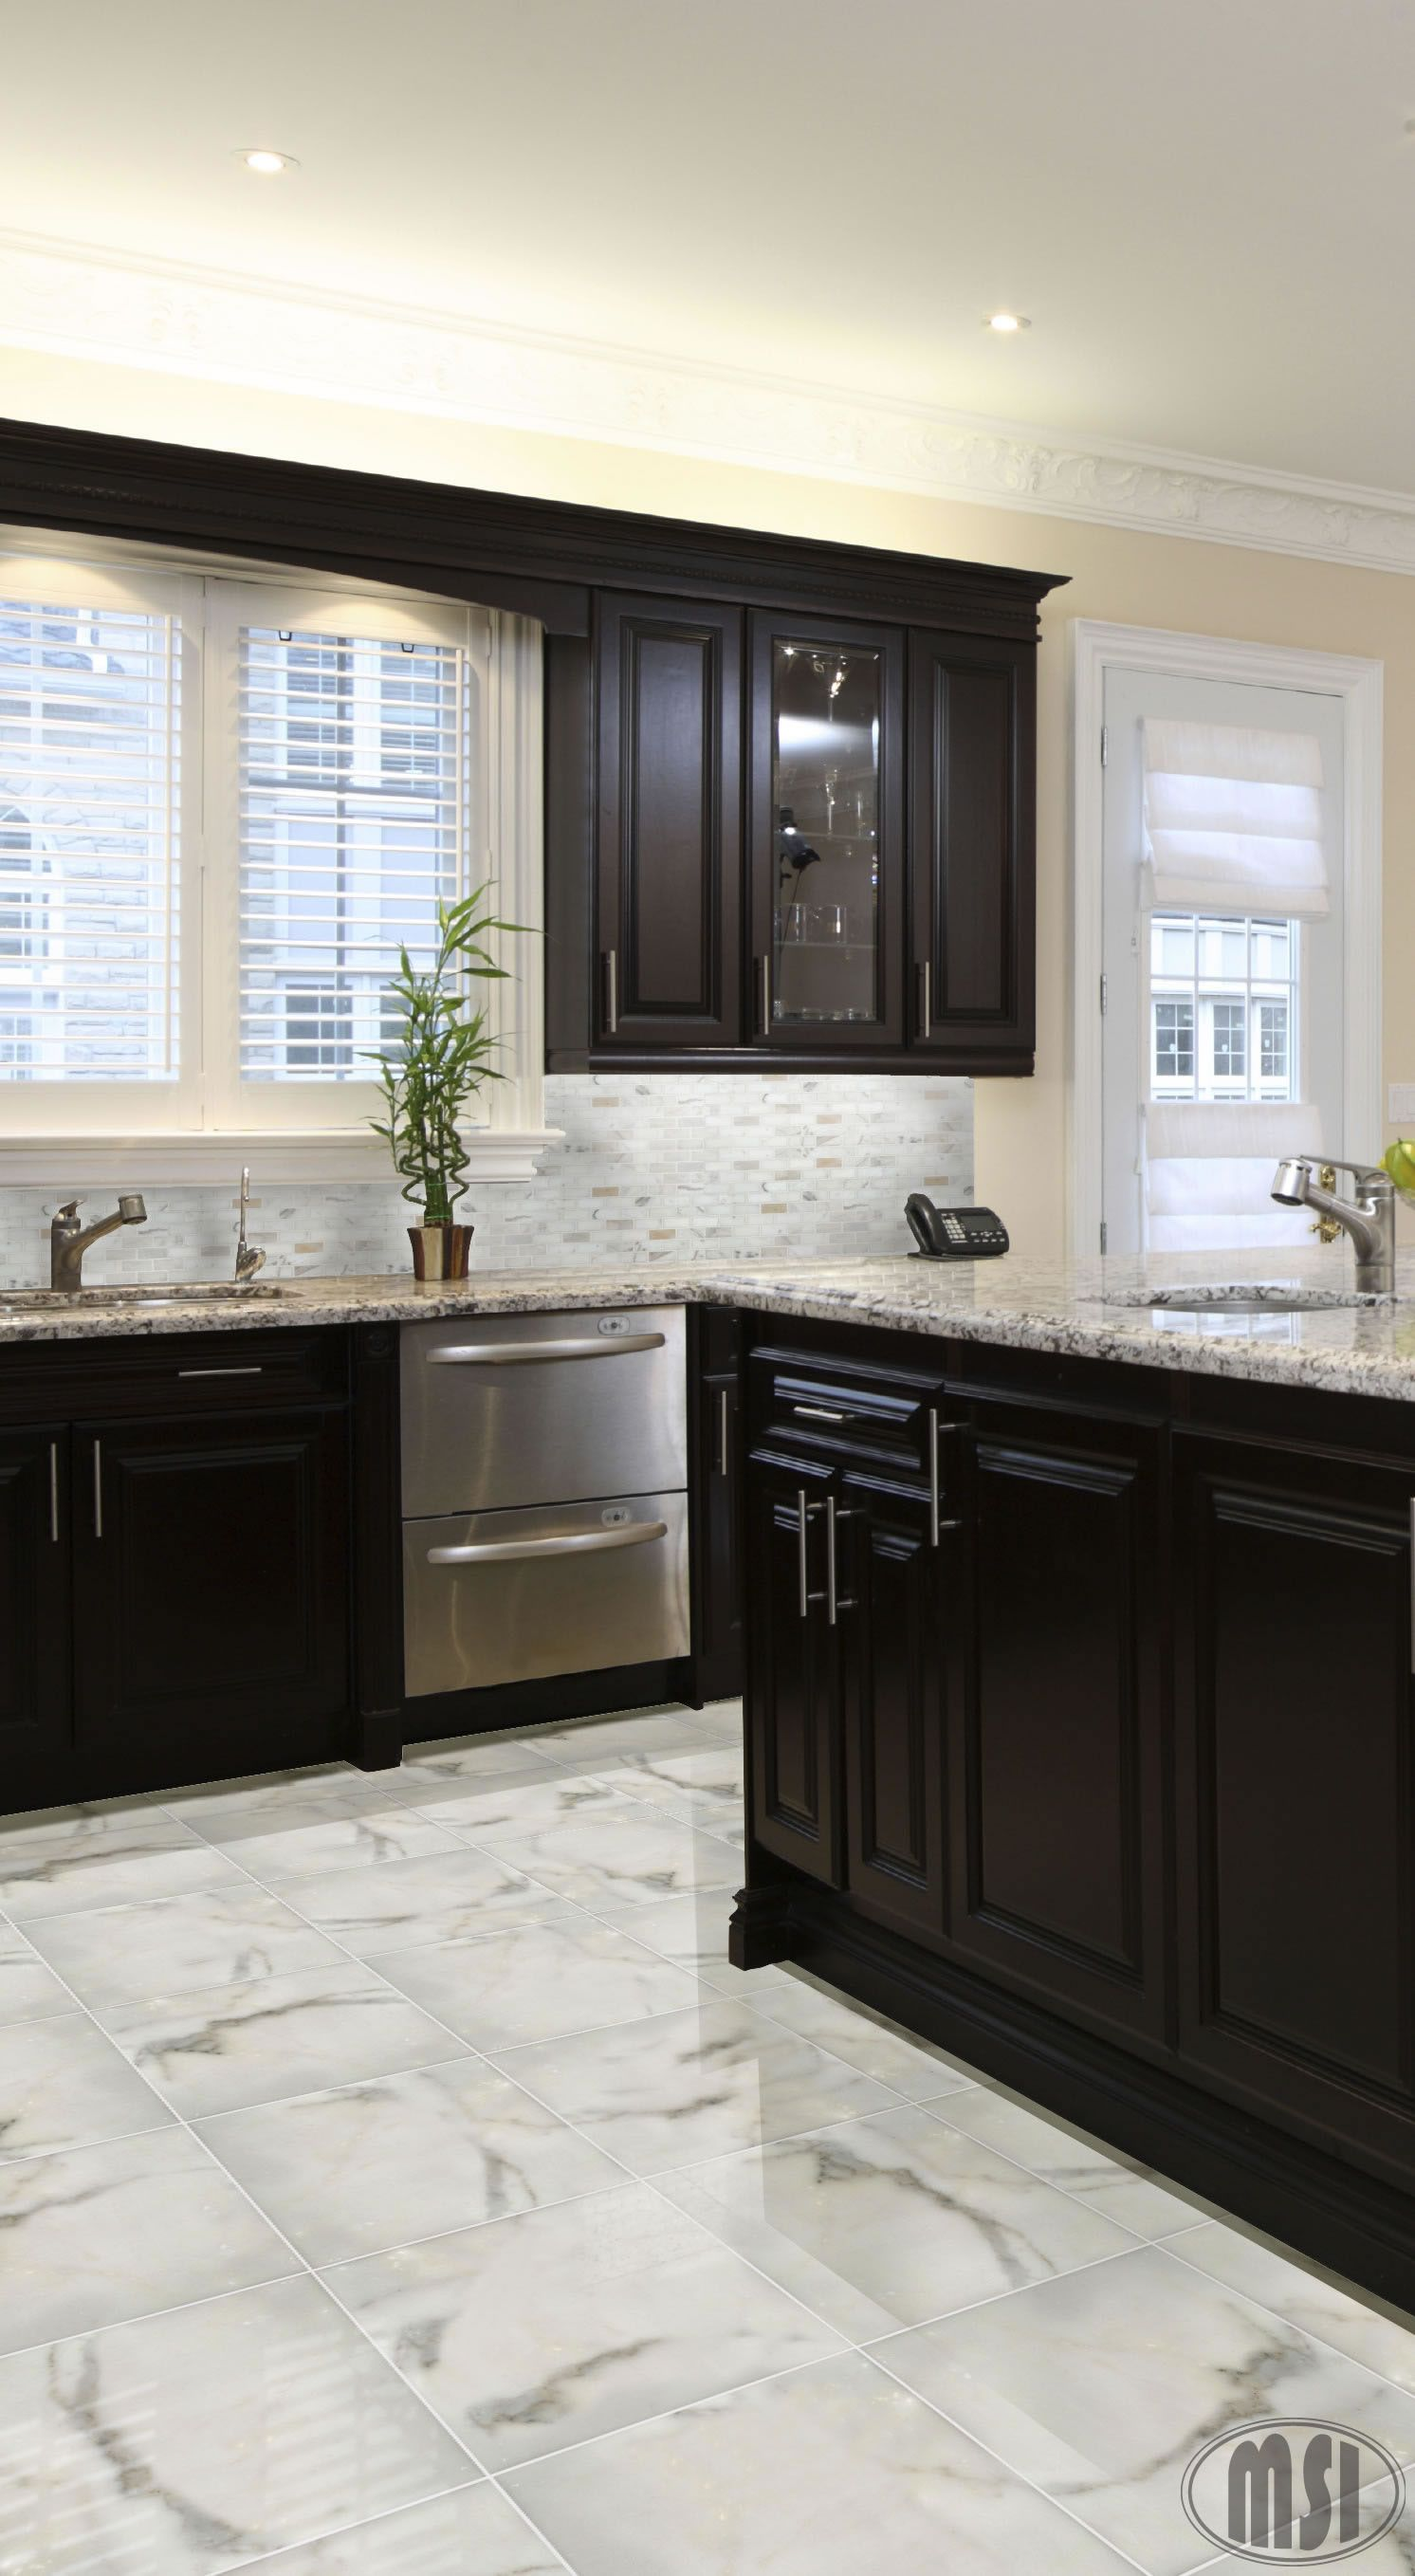 Find The Best Modern Kitchen Design Ideas Inspiration To Match Your Style Browse Through Images Of Modern Kitc Home Kitchens Home Remodeling Kitchen Remodel